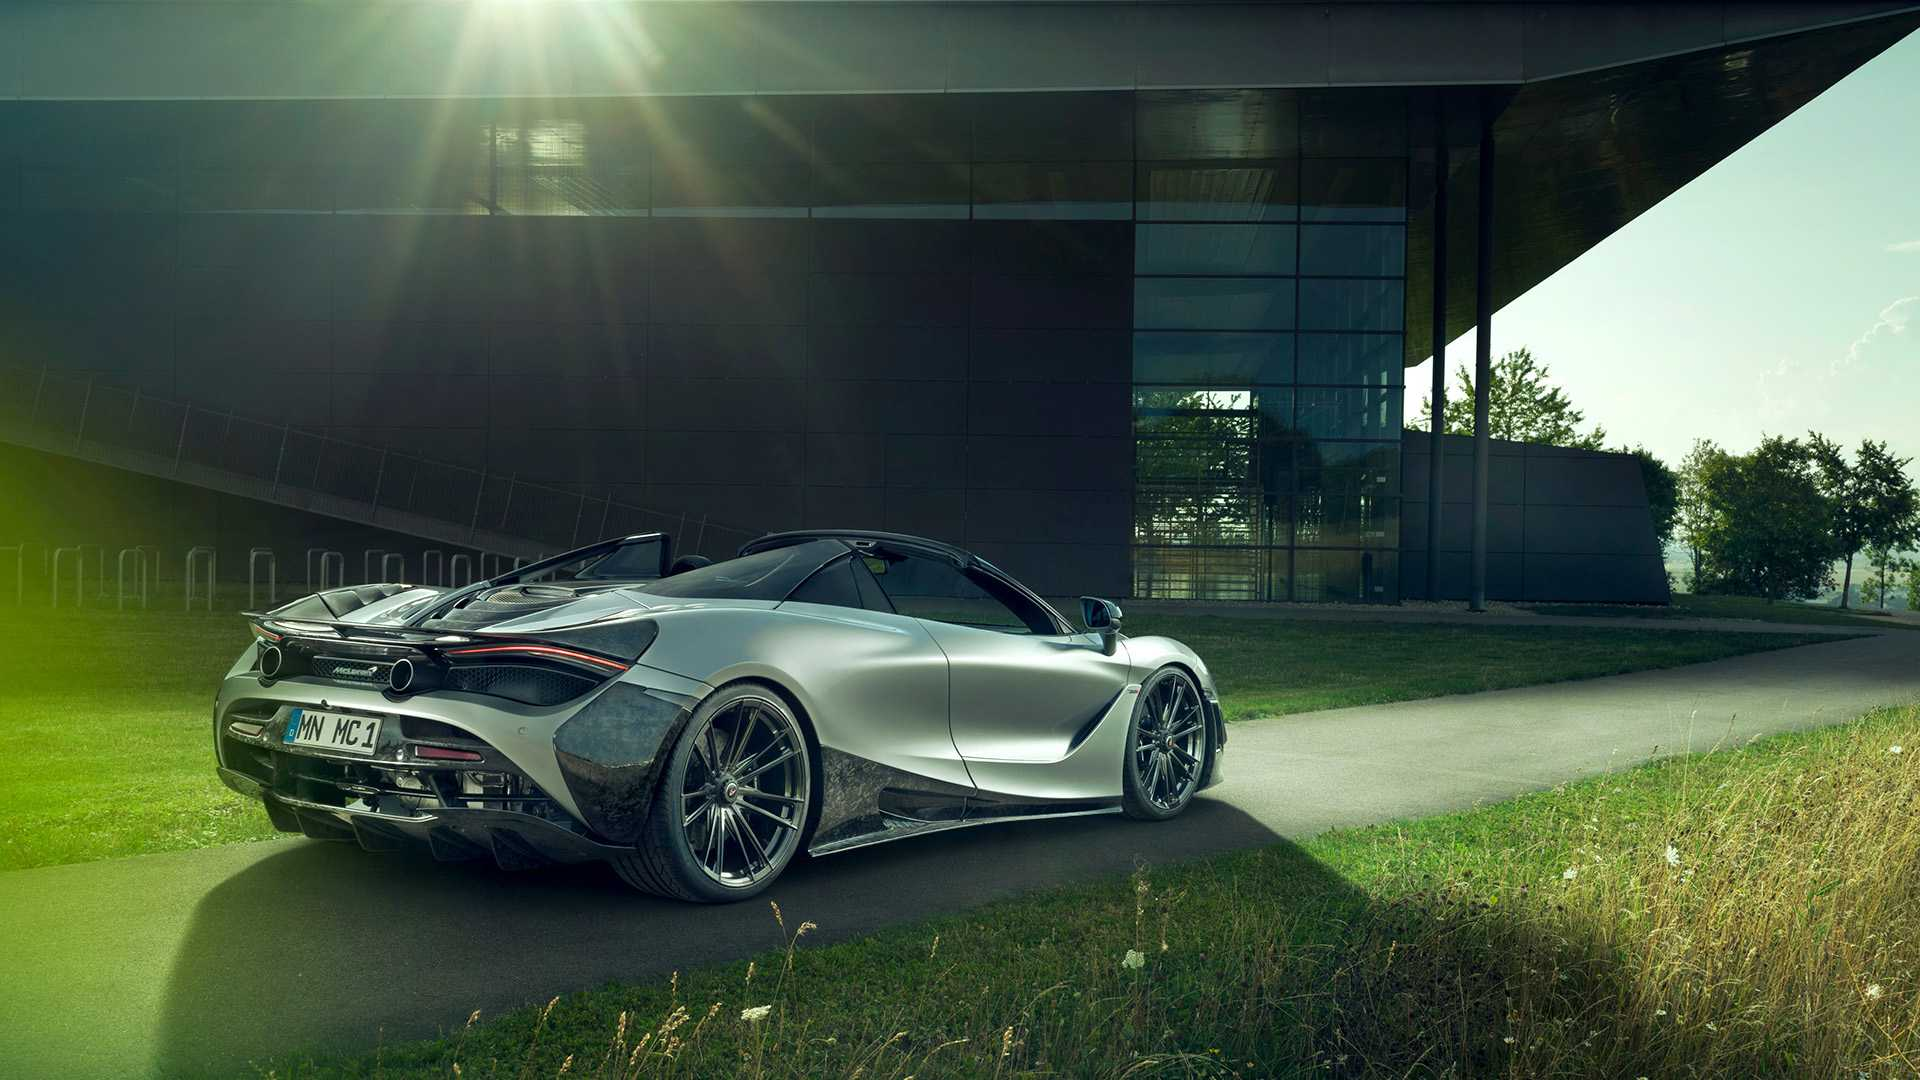 2019 NOVITEC McLaren 720S Spider Rear Three-Quarter Wallpapers (5)